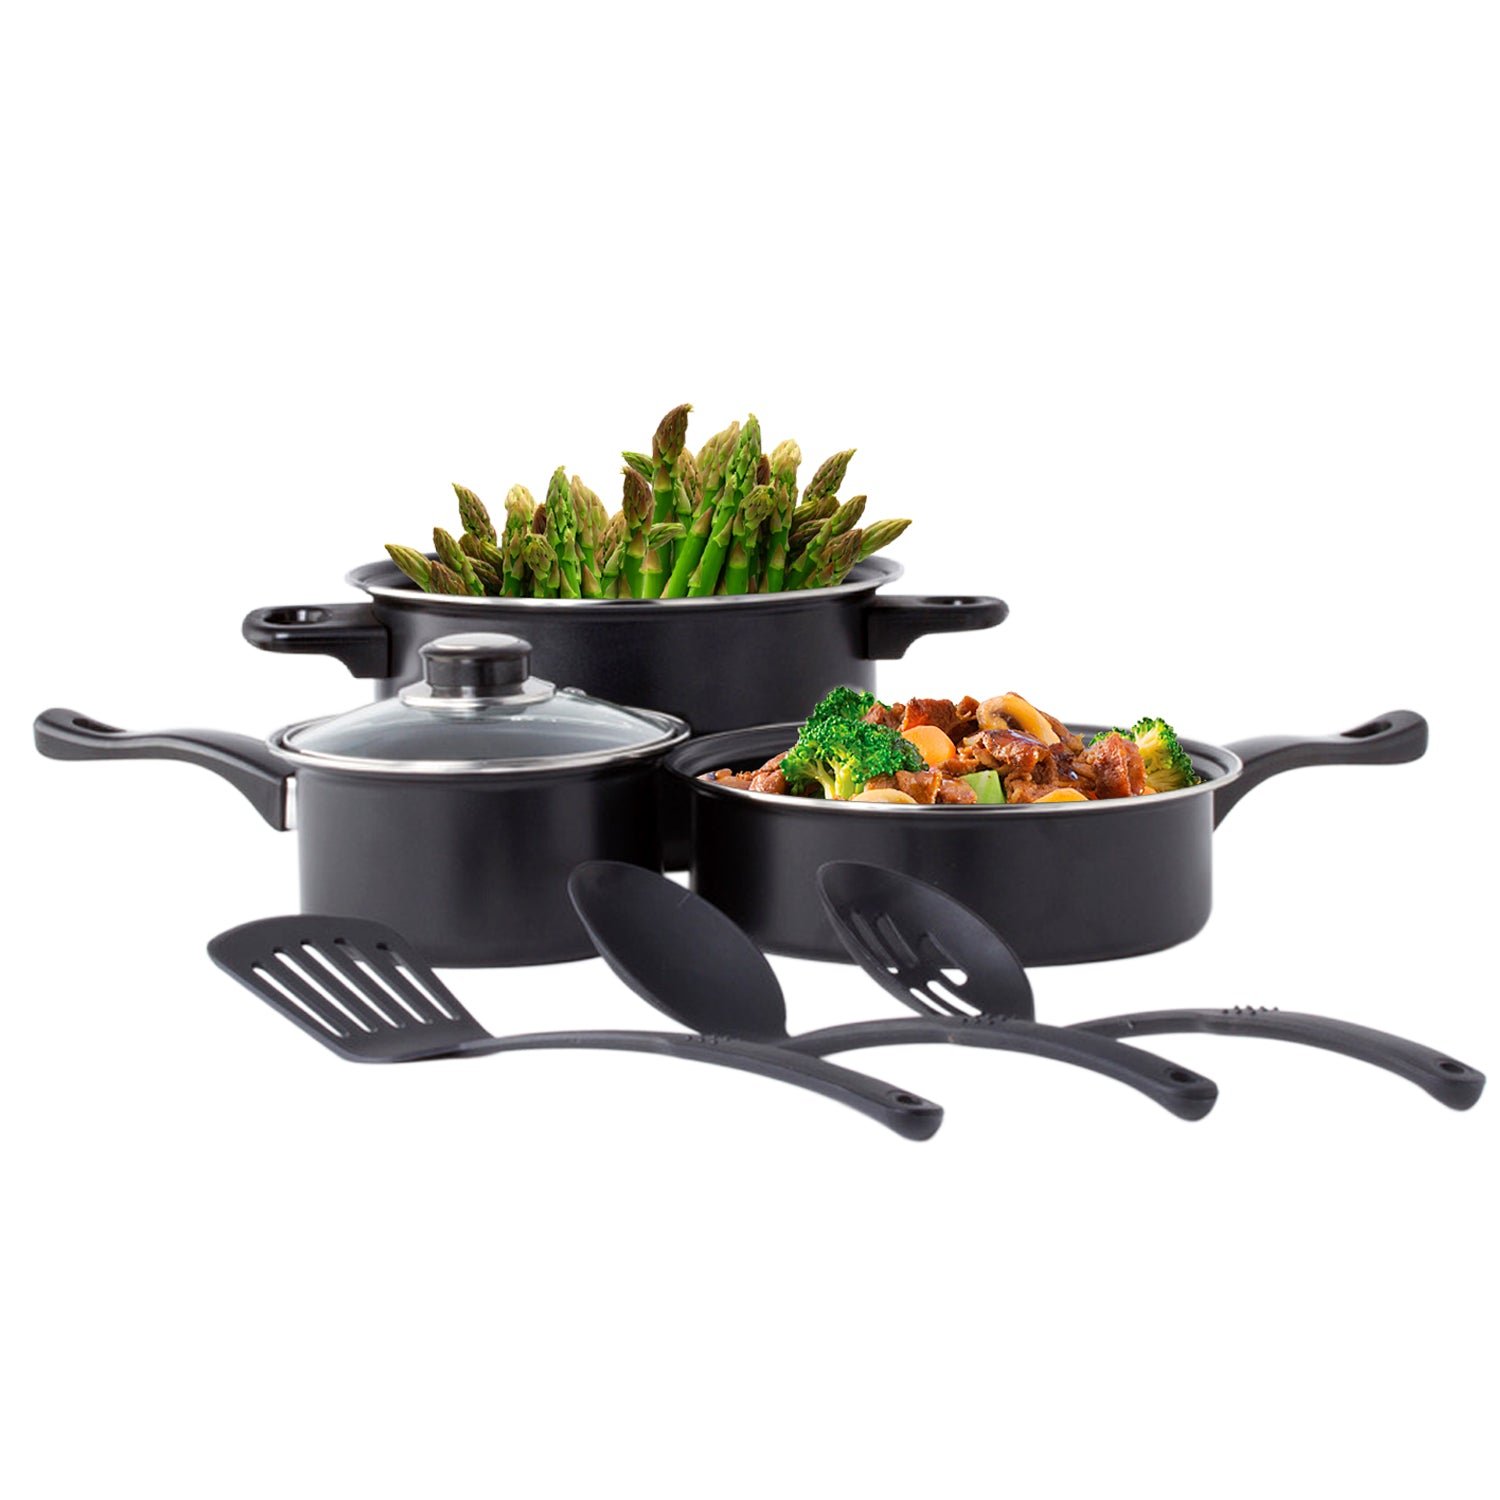 Carbon Steel 8 Pcs. Non Stick Cookware Set W/ Utensils Dutch Oven Fry Sauce Pan